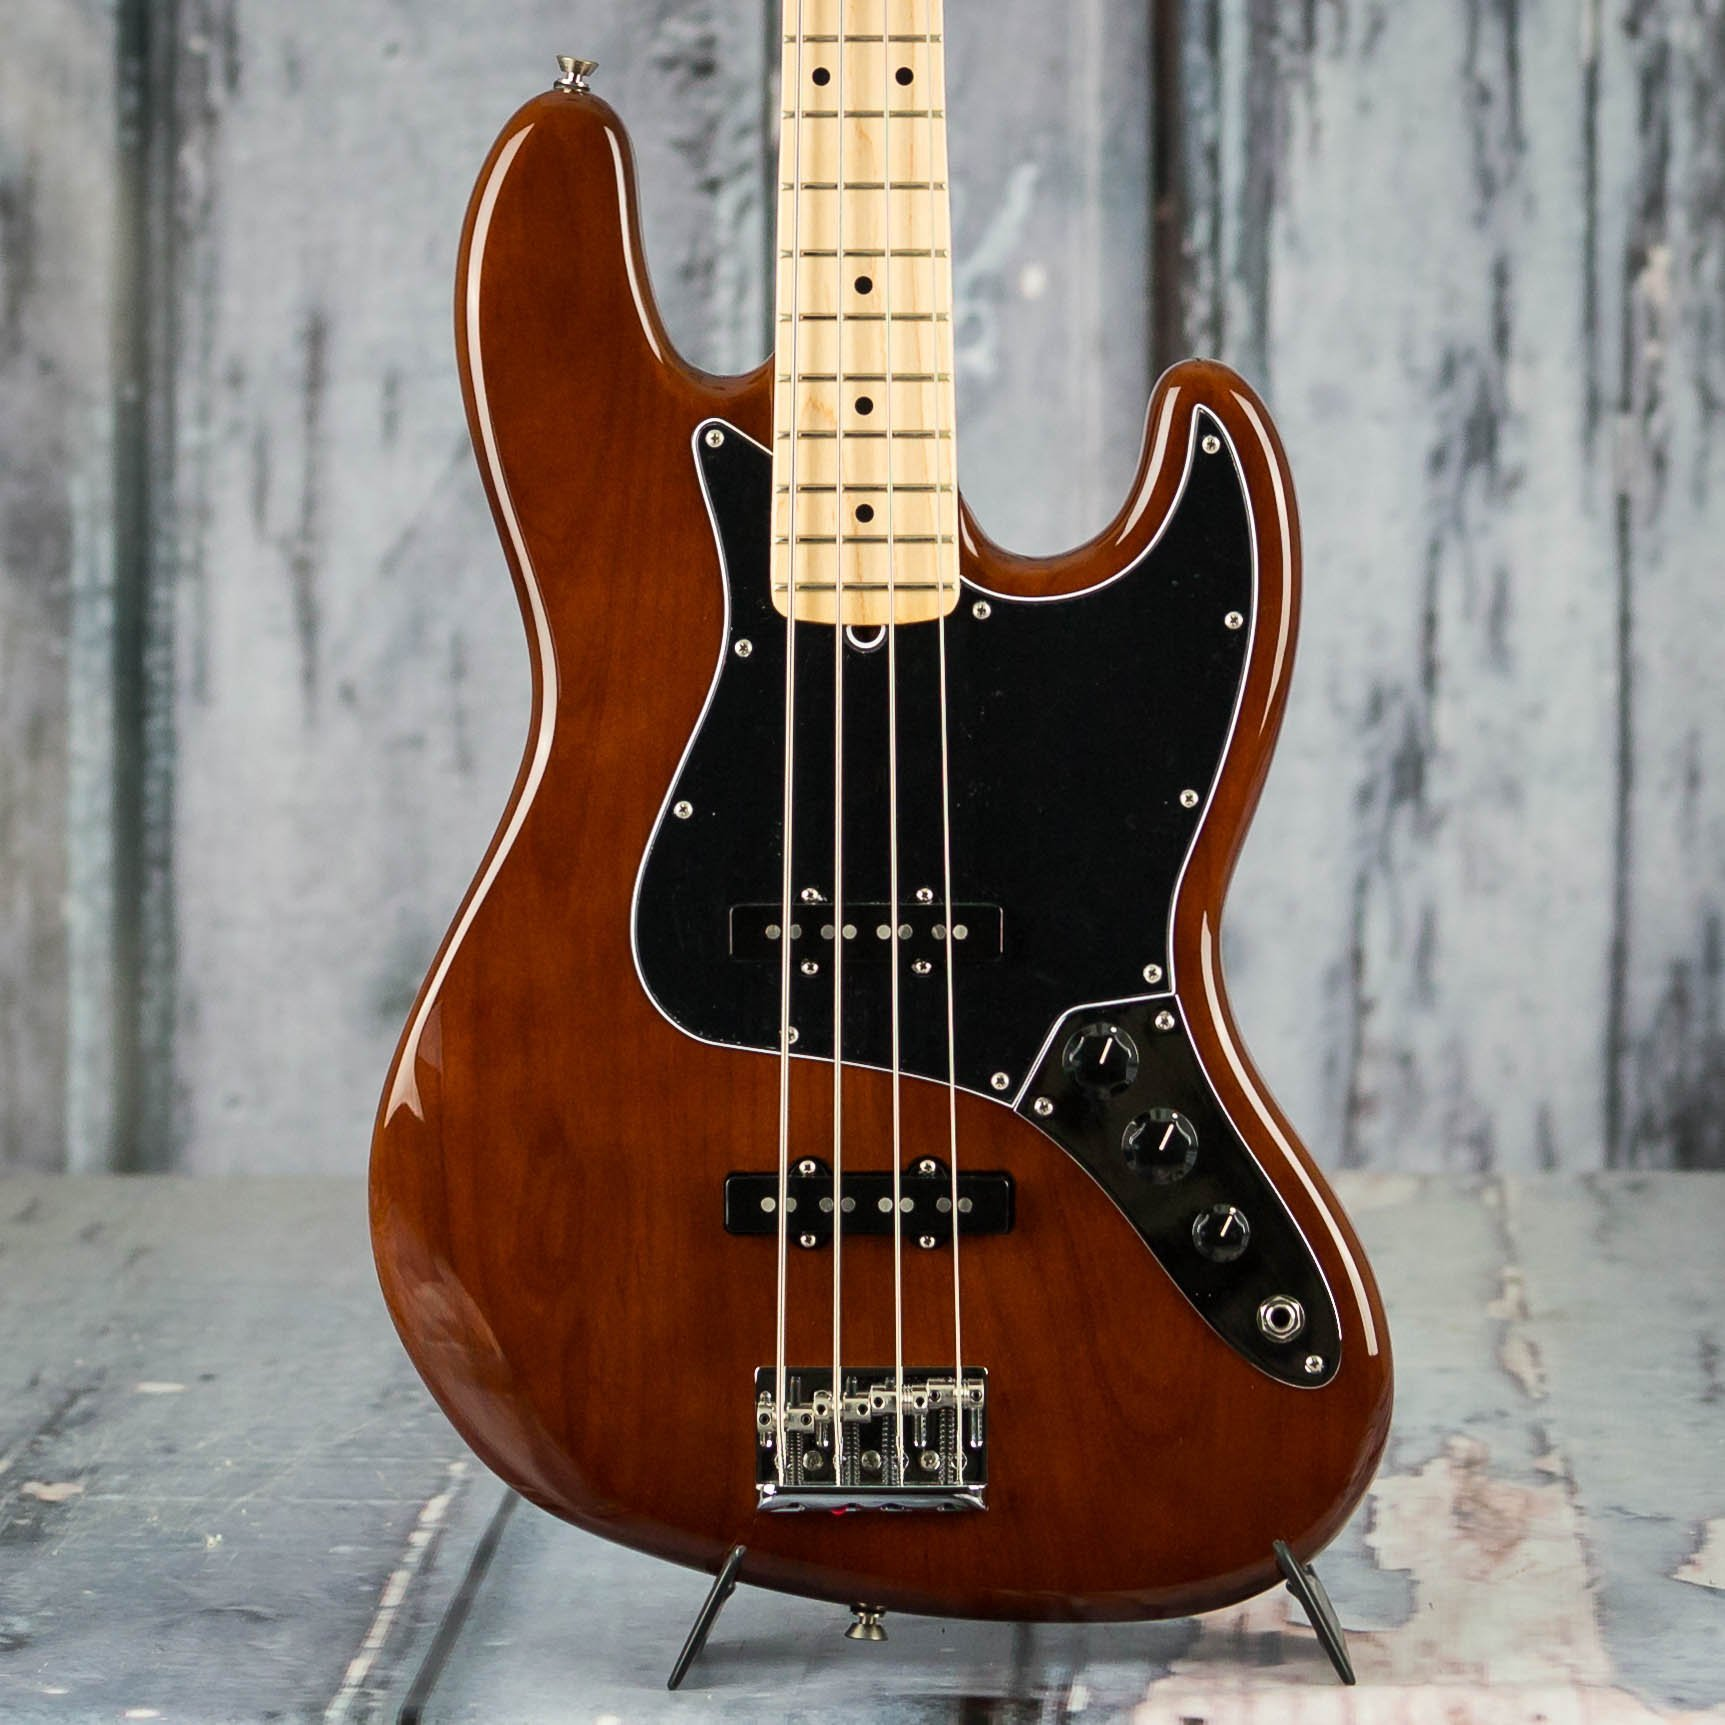 2018 Fender Mod Shop American Professional Jazz Bass Walnut Guitars Bass Replay Guitar Exchange After selecting the desired instrument, you then specify the. https www gbase com gear fender mod shop american professional jazz bass walnut 2018